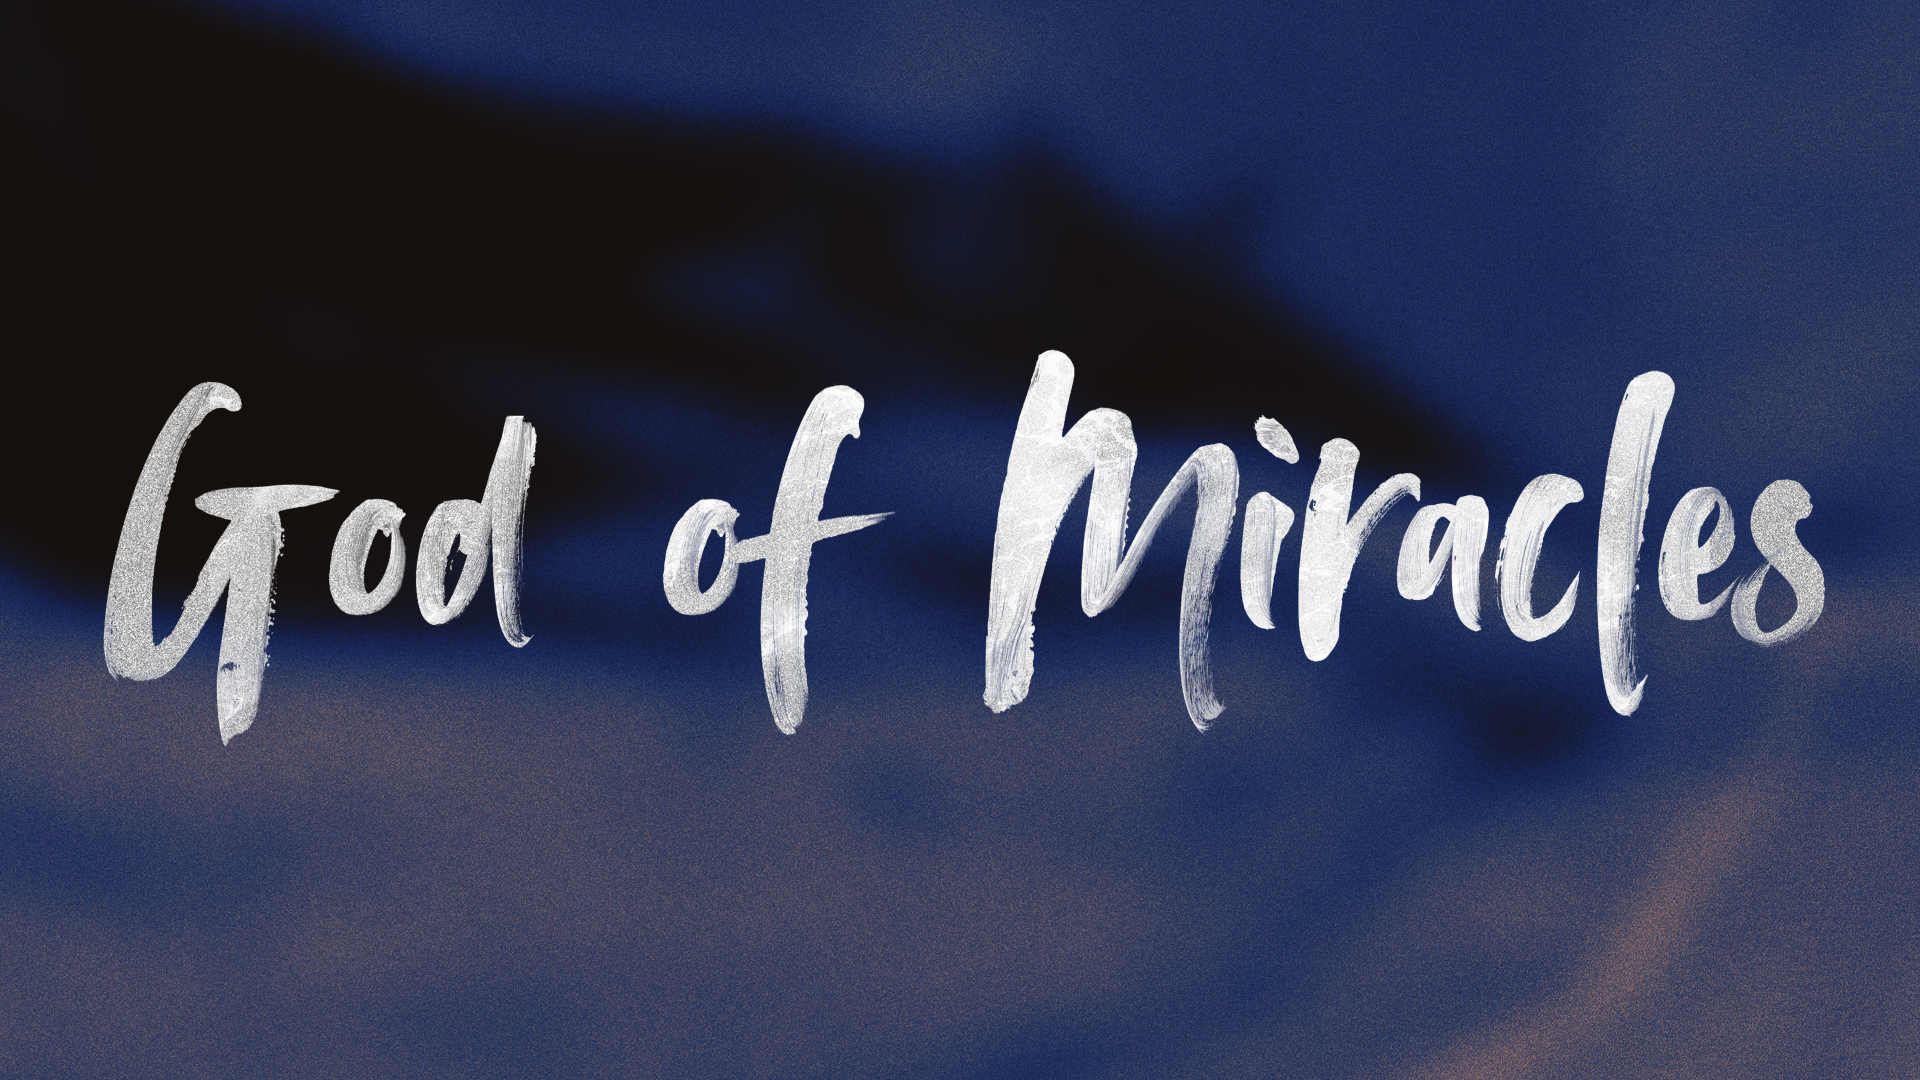 God of Miracles Title.jpg